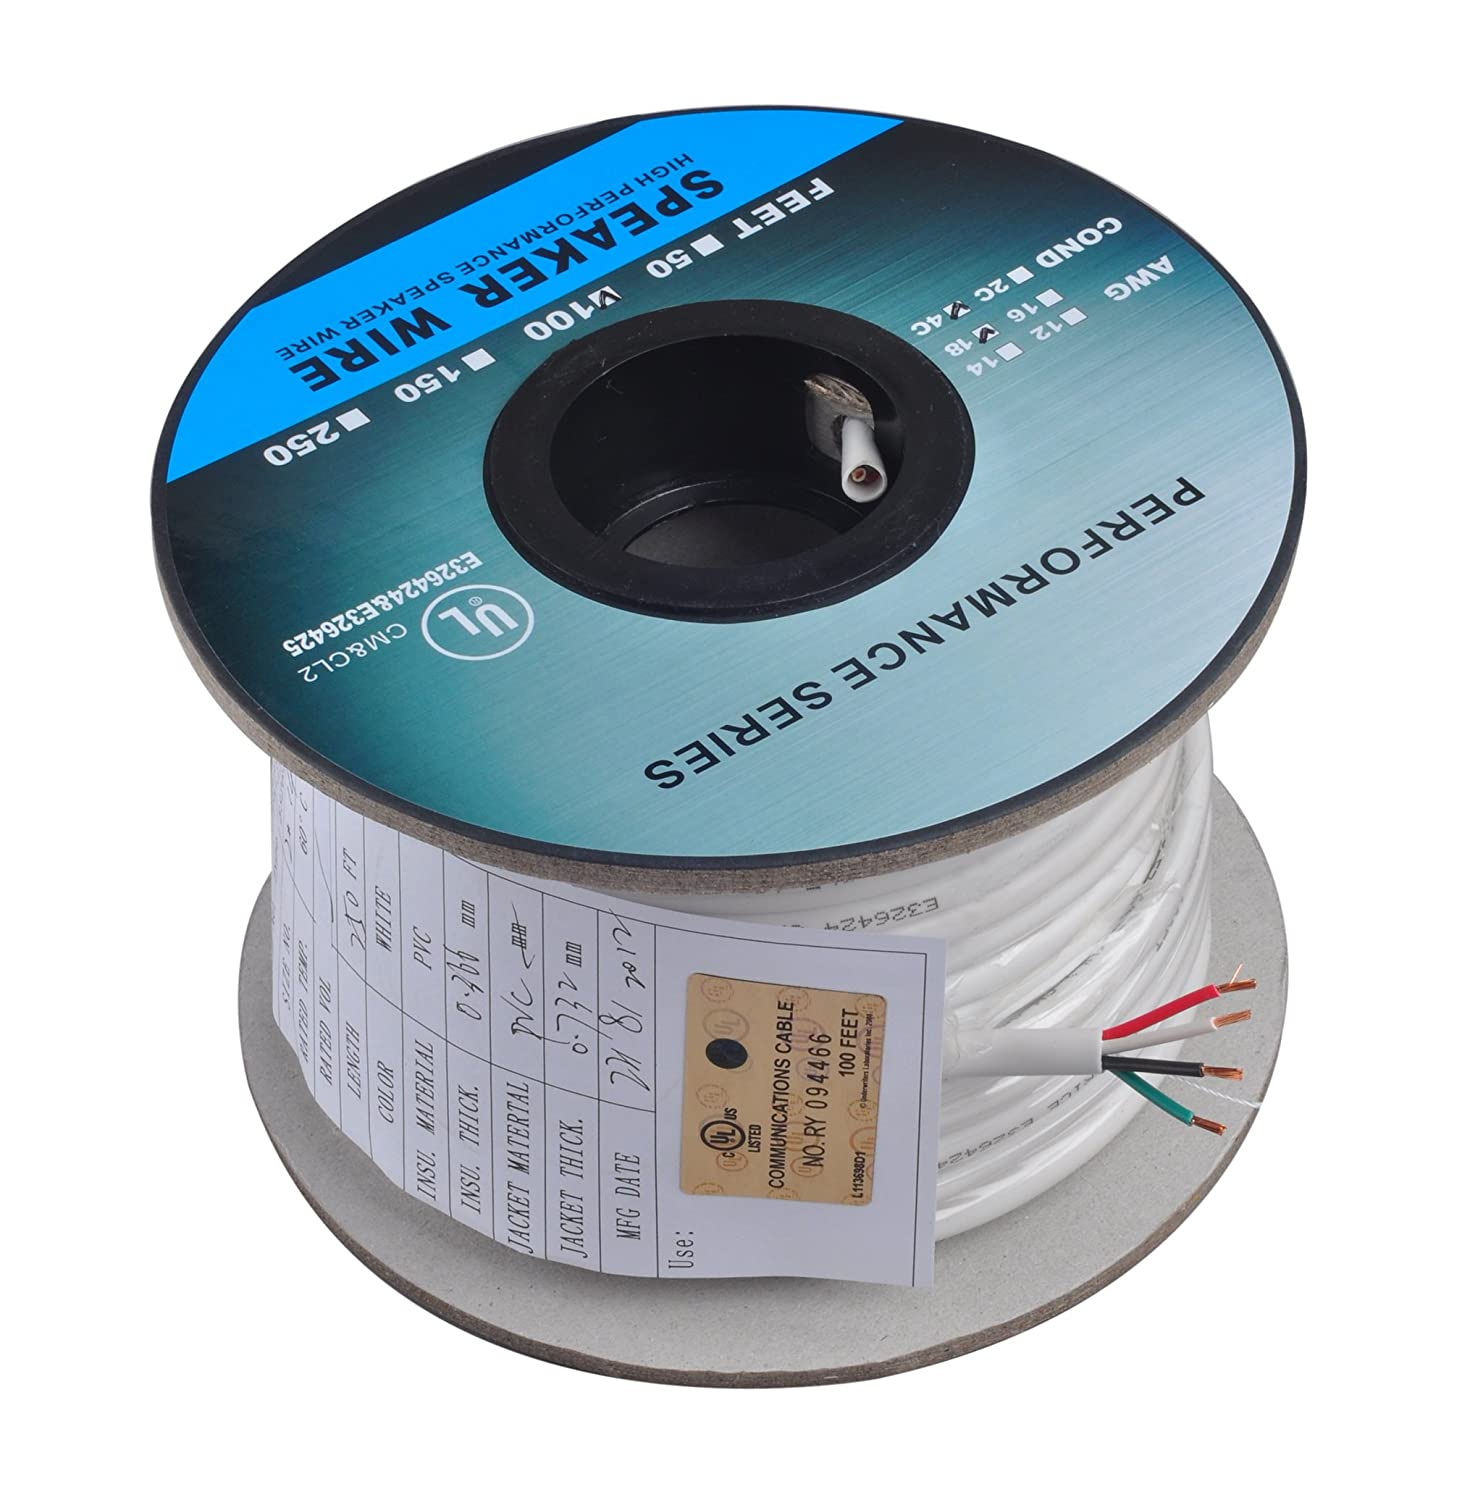 81FSlmHoJSL._SL1500_ amazon com c&e 500 feet 14awg 4 conductor solid copper, oxygen 4 conductor speaker wire diagram at creativeand.co